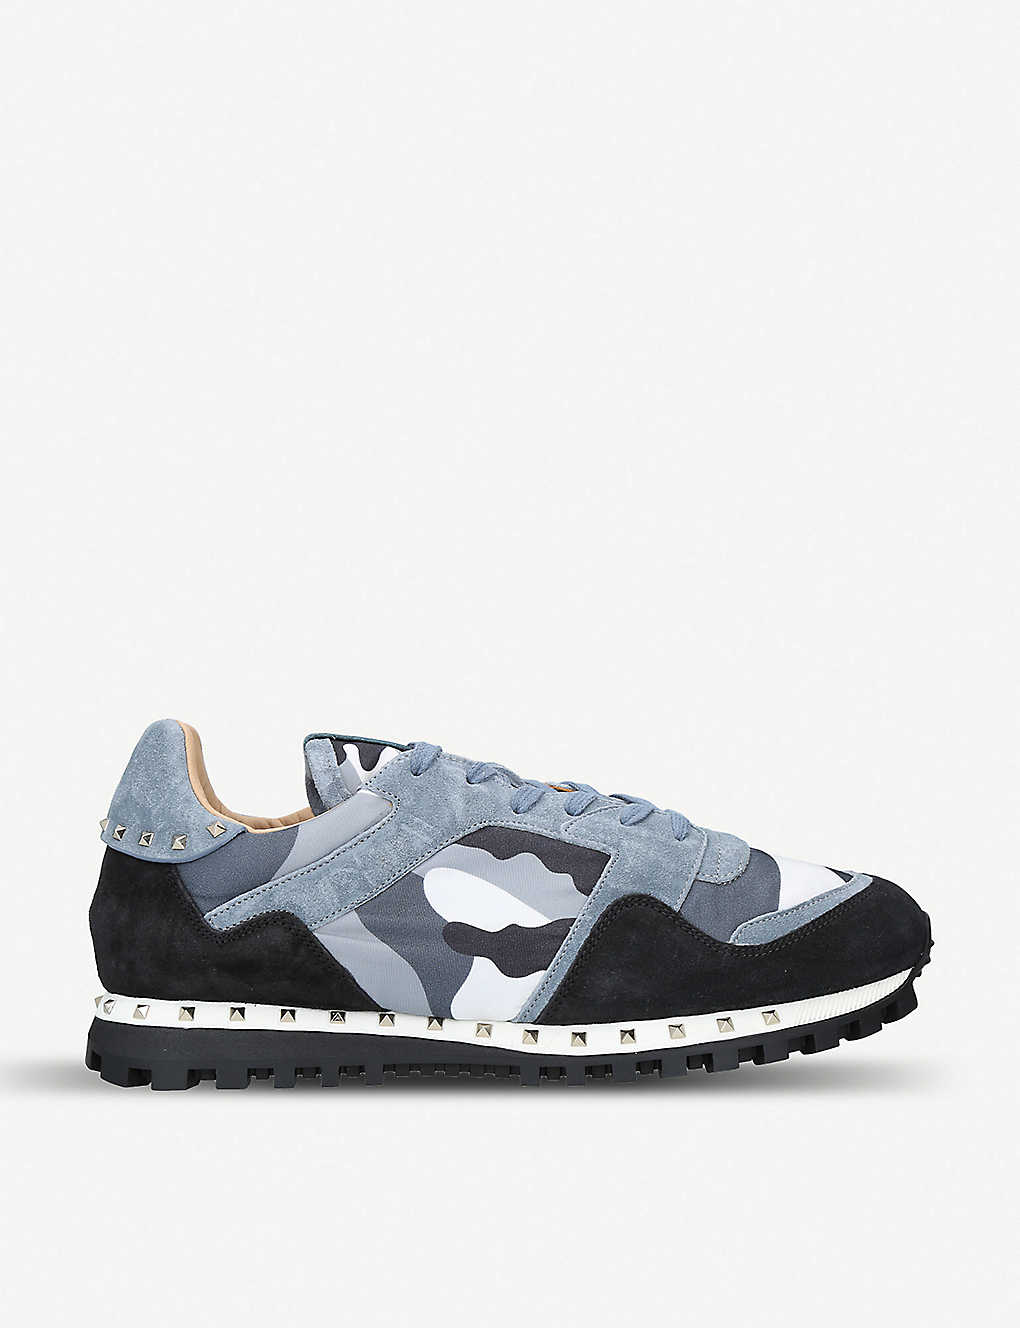 62bf9d79add3 VALENTINO - Rockstud embellished camouflage-print shell and suede ...